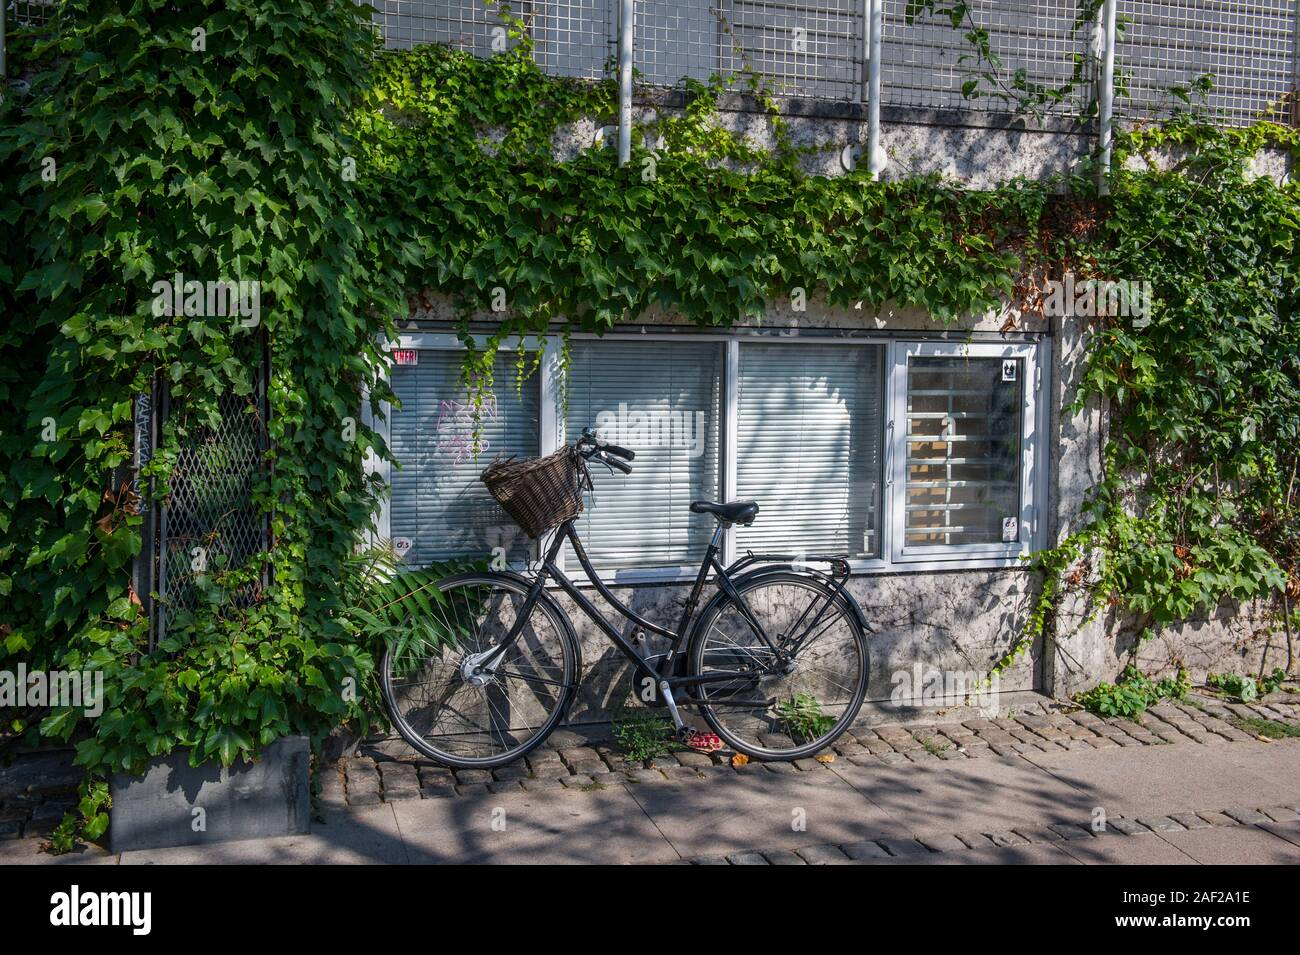 A bicycle leaning against wall in Copenhagen, Denmark Stock Photo